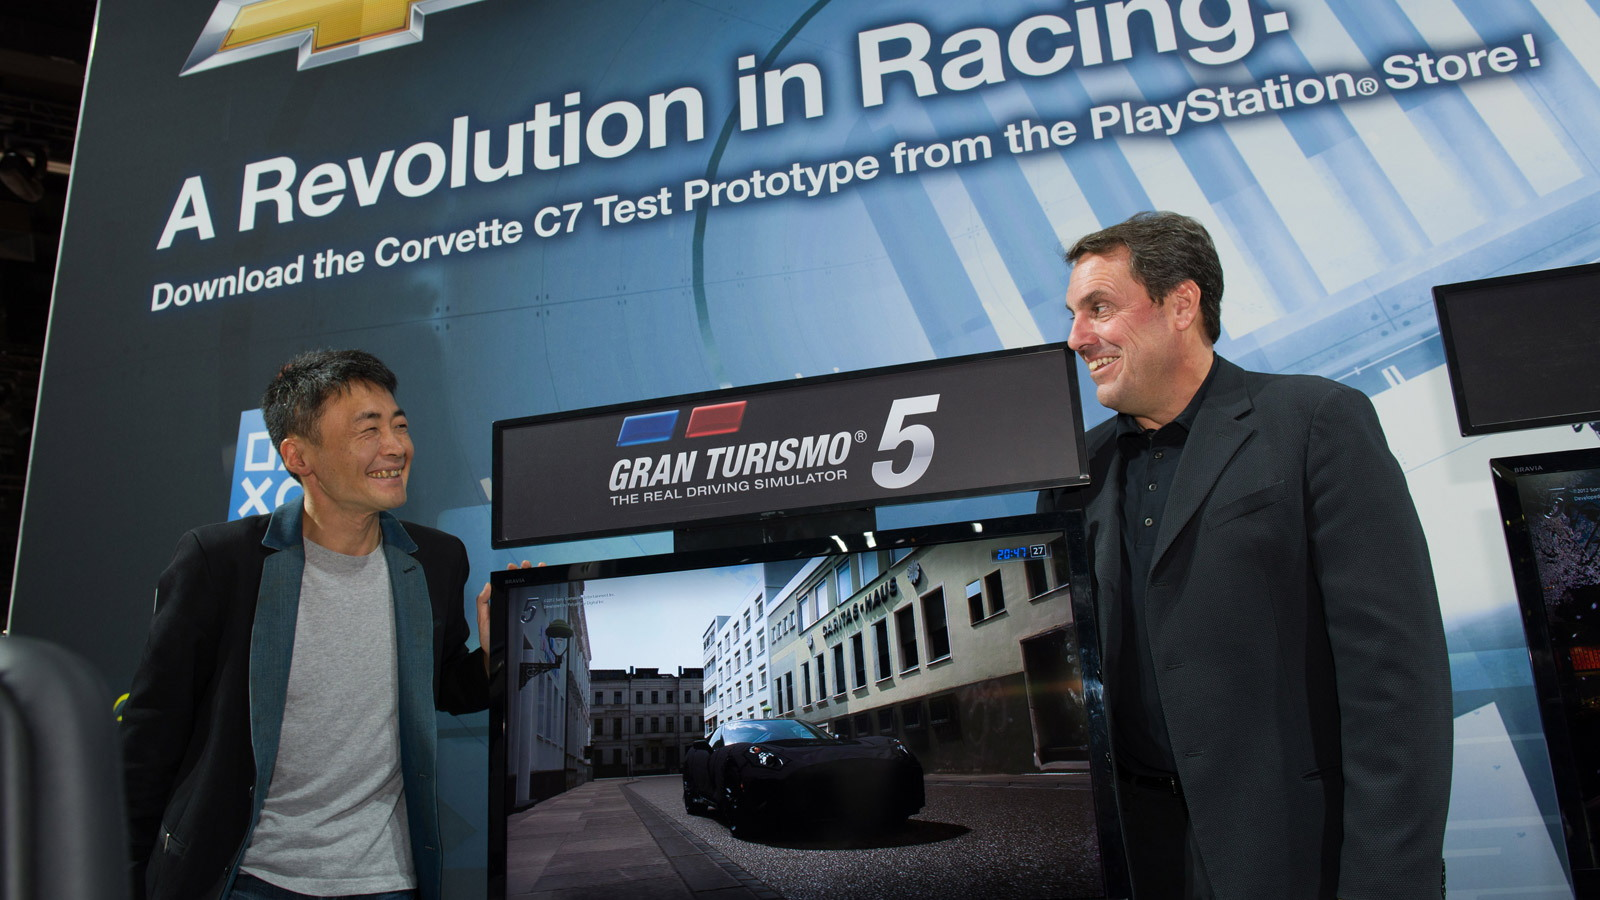 Gran Turismo creator Kazunori Yamauchi and GM North American president Mark Reuss